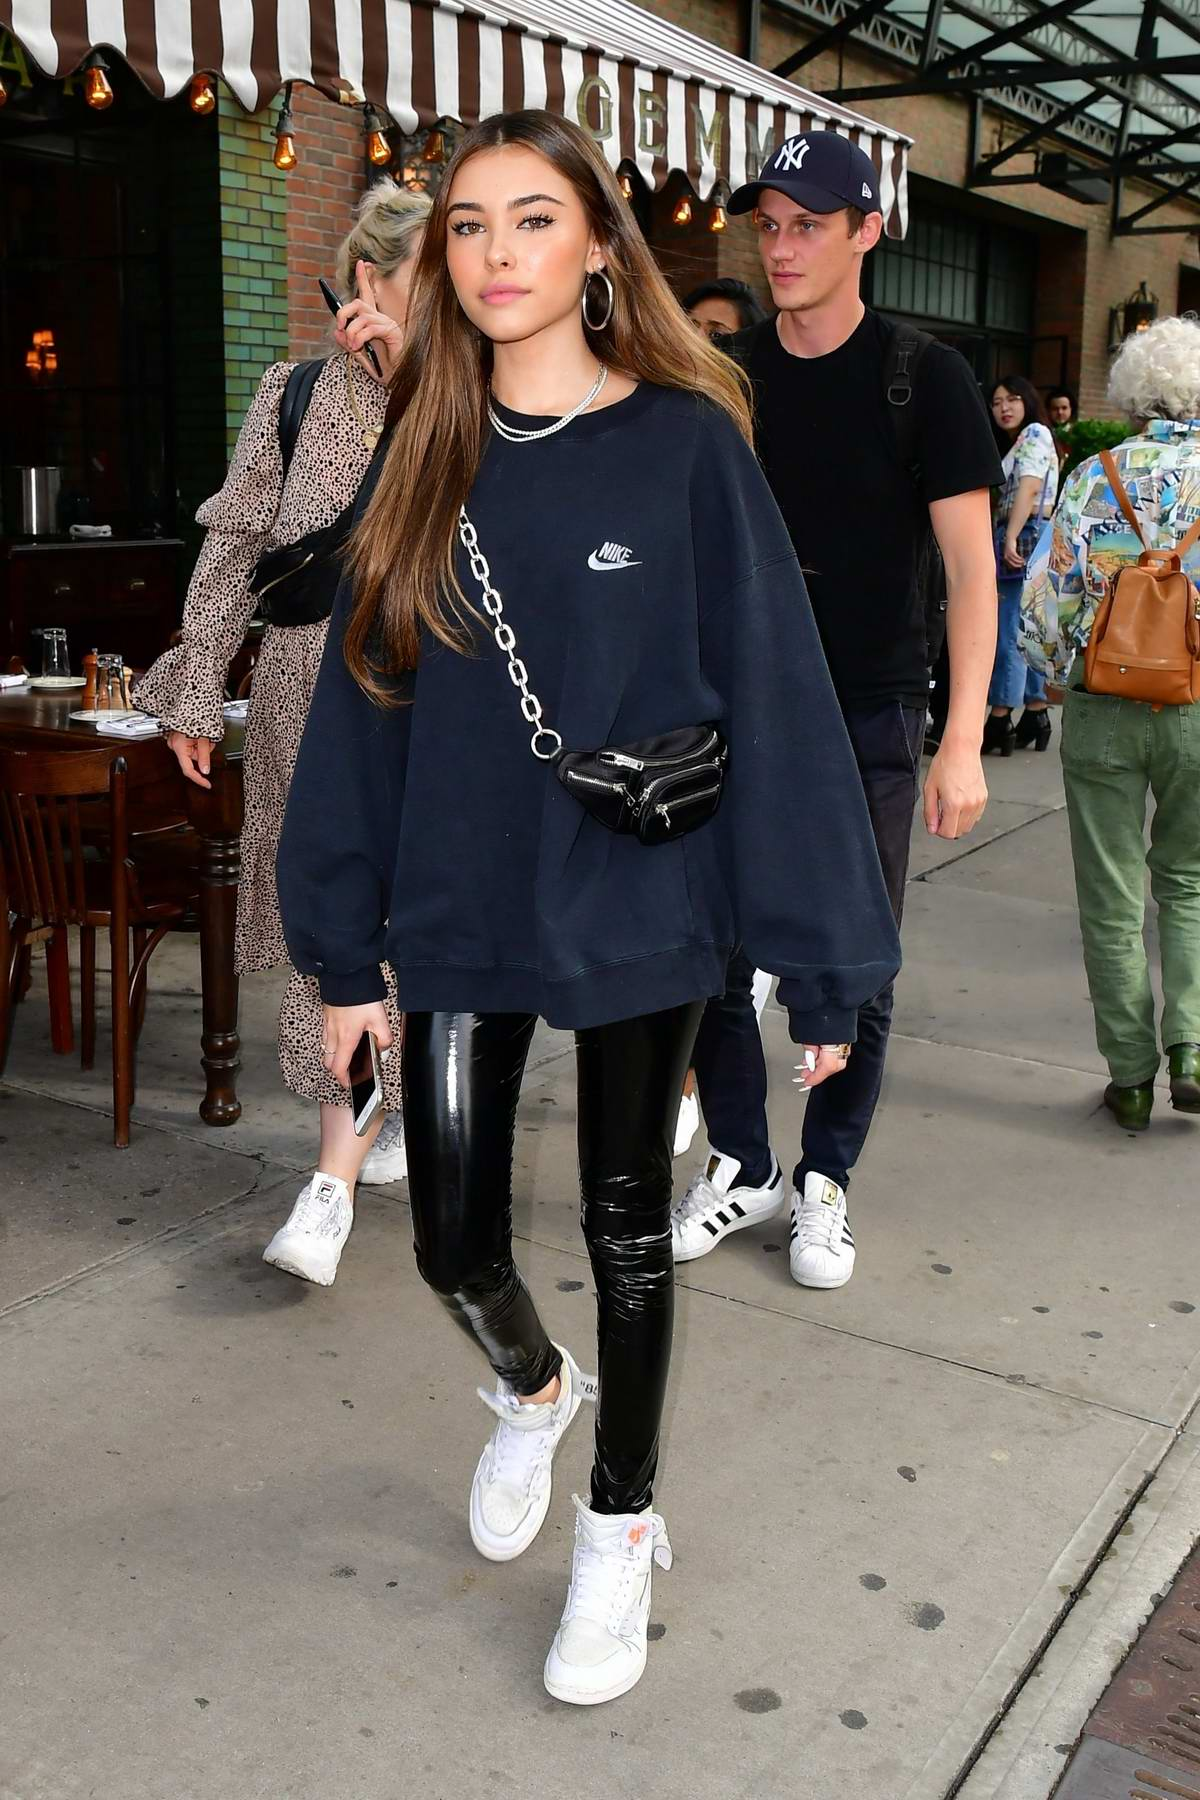 Madison Beer dons a Nike sweatshirt, PVC pants with Off-White Jordan 1 sneakers as she steps out in New York City